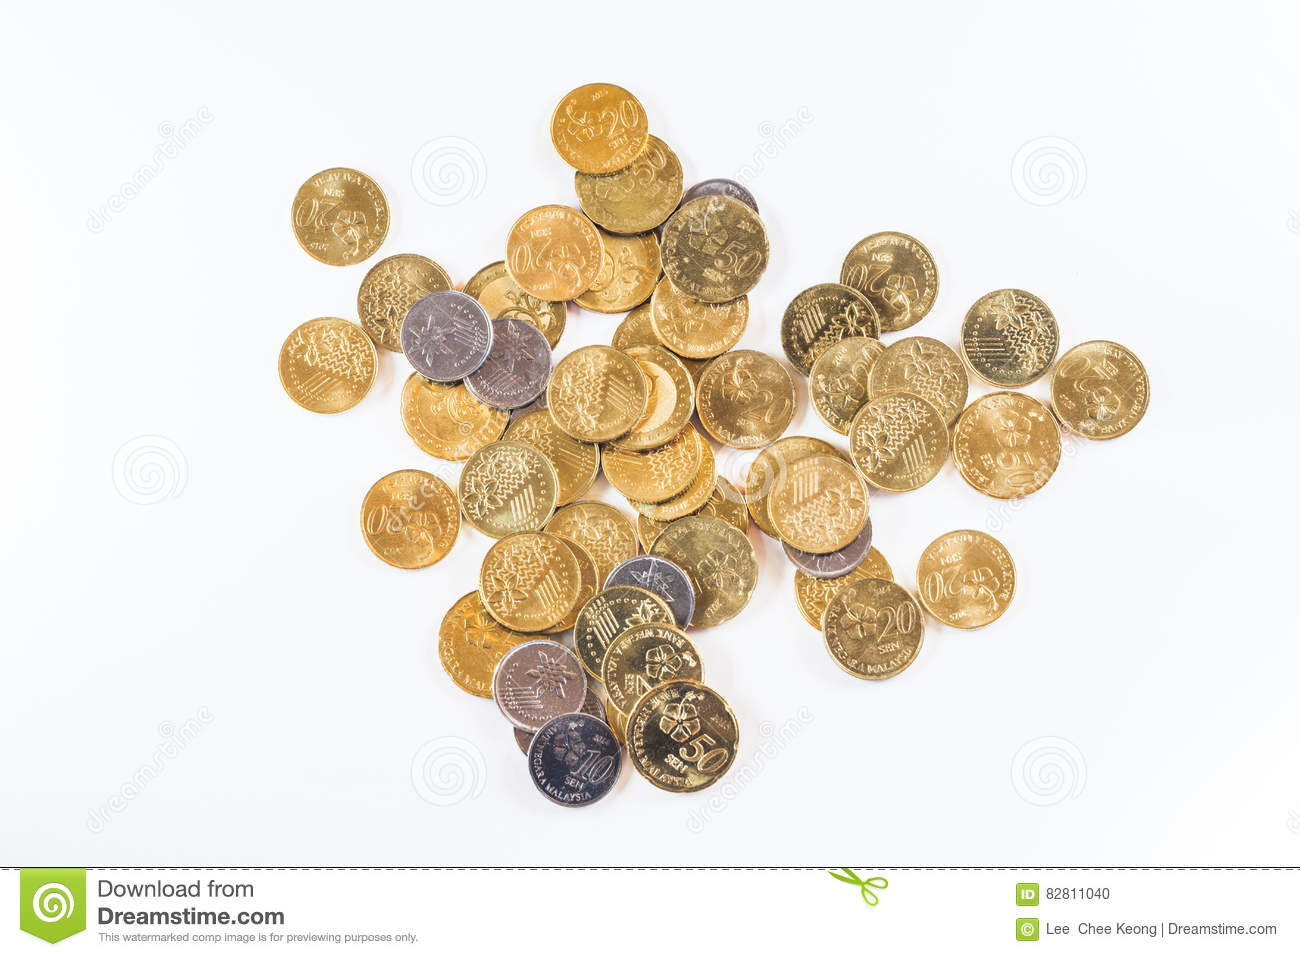 Malaysia Currency Coins And Banknotes Stock Photo - Image of